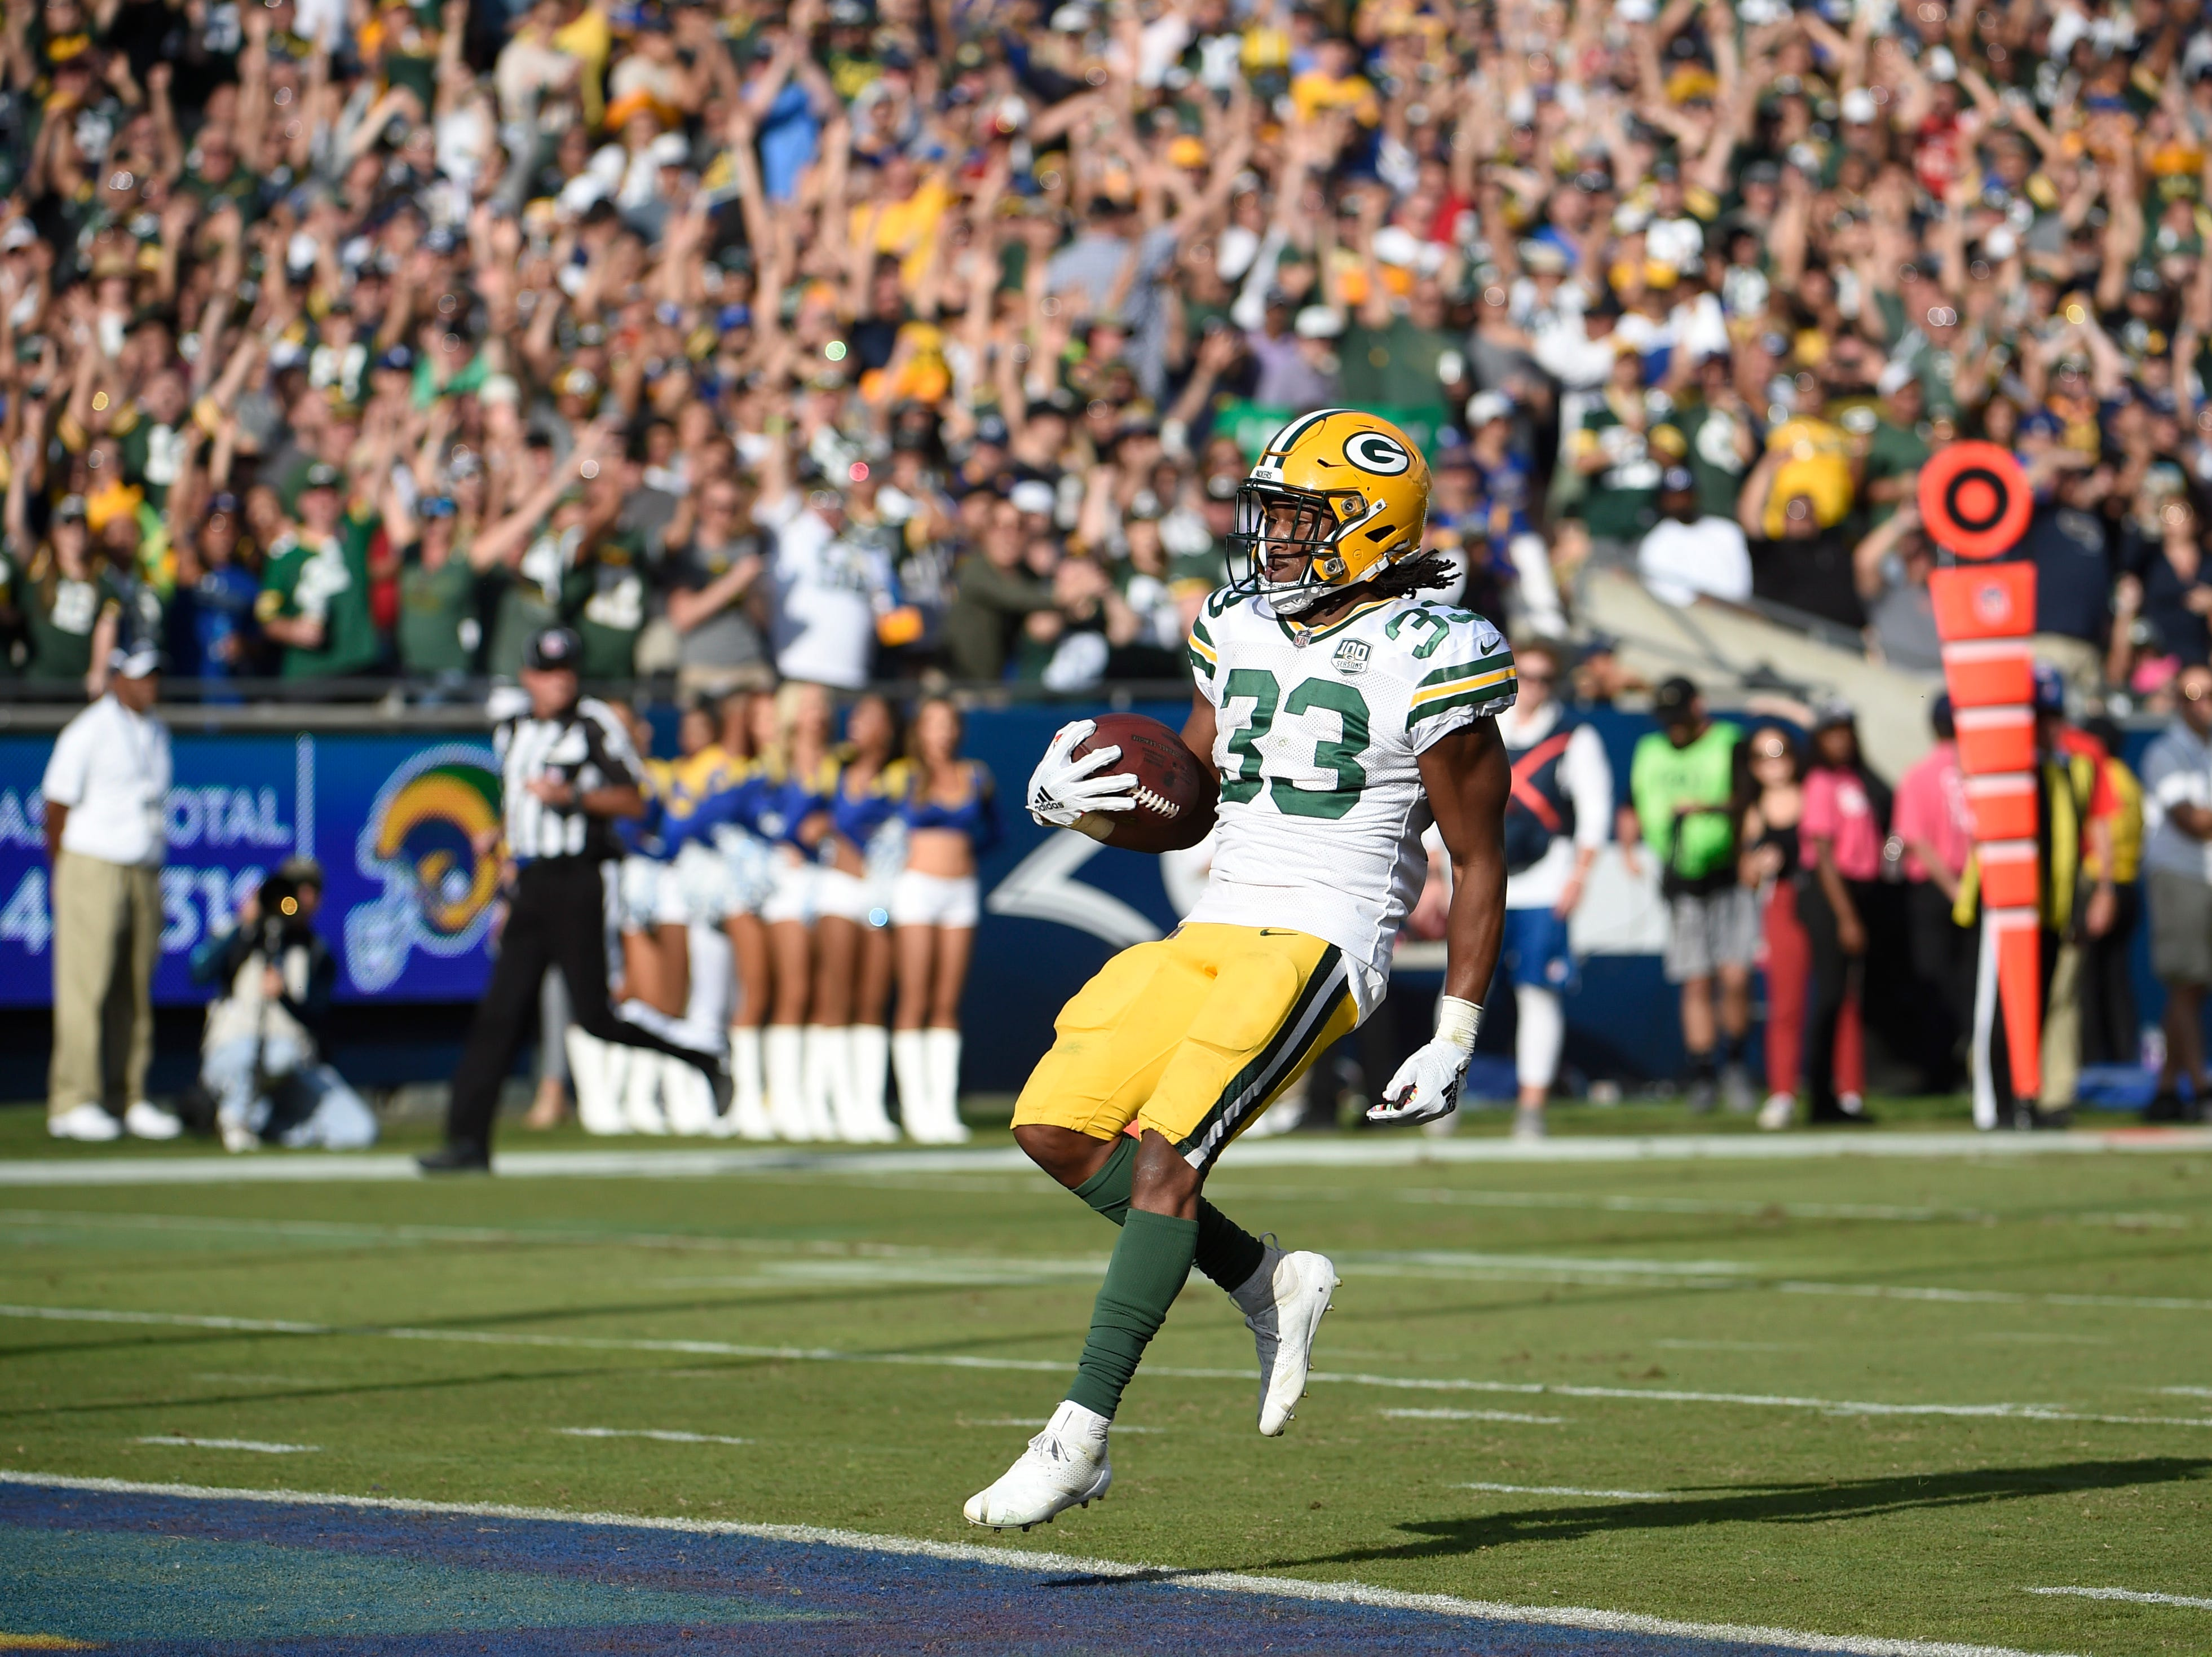 Green Bay Packers running back Aaron Jones scores a touchdown during the second half of an NFL football game against the Los Angeles Rams, Sunday, Oct. 28, 2018, in Los Angeles. (AP Photo/Denis Poroy)